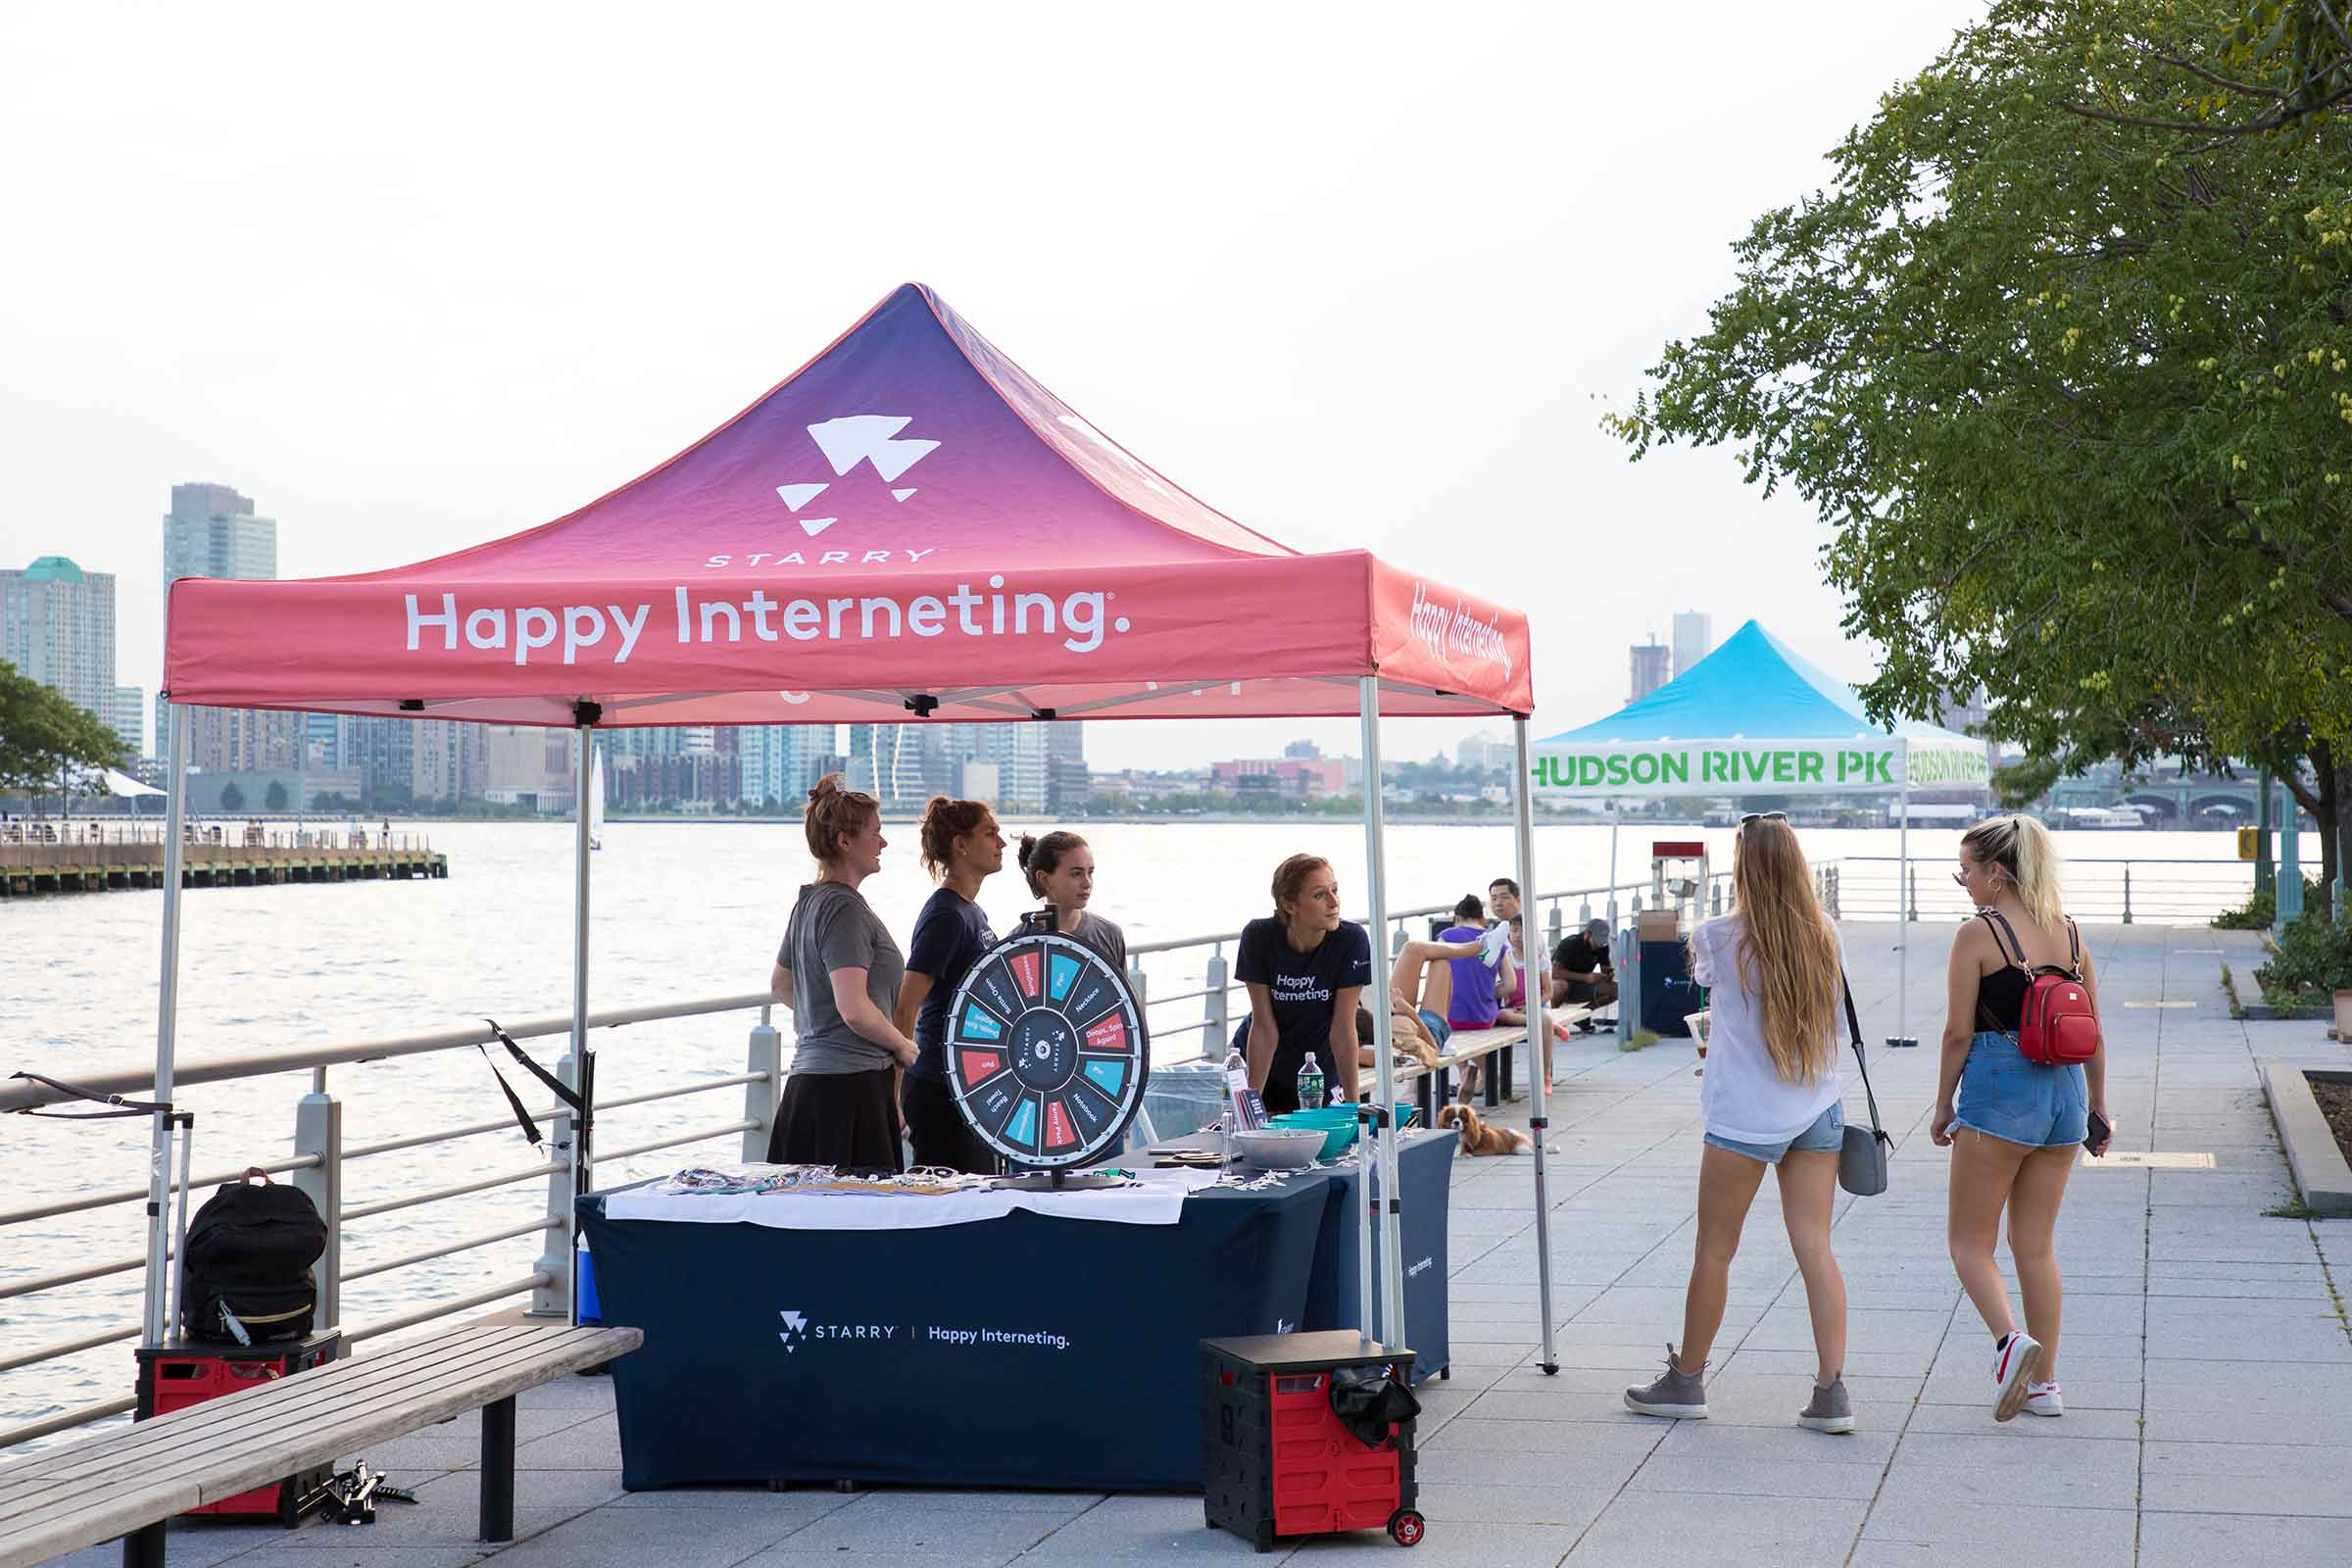 Starry, a web provider is one of the many sponsors for Hudson River Park